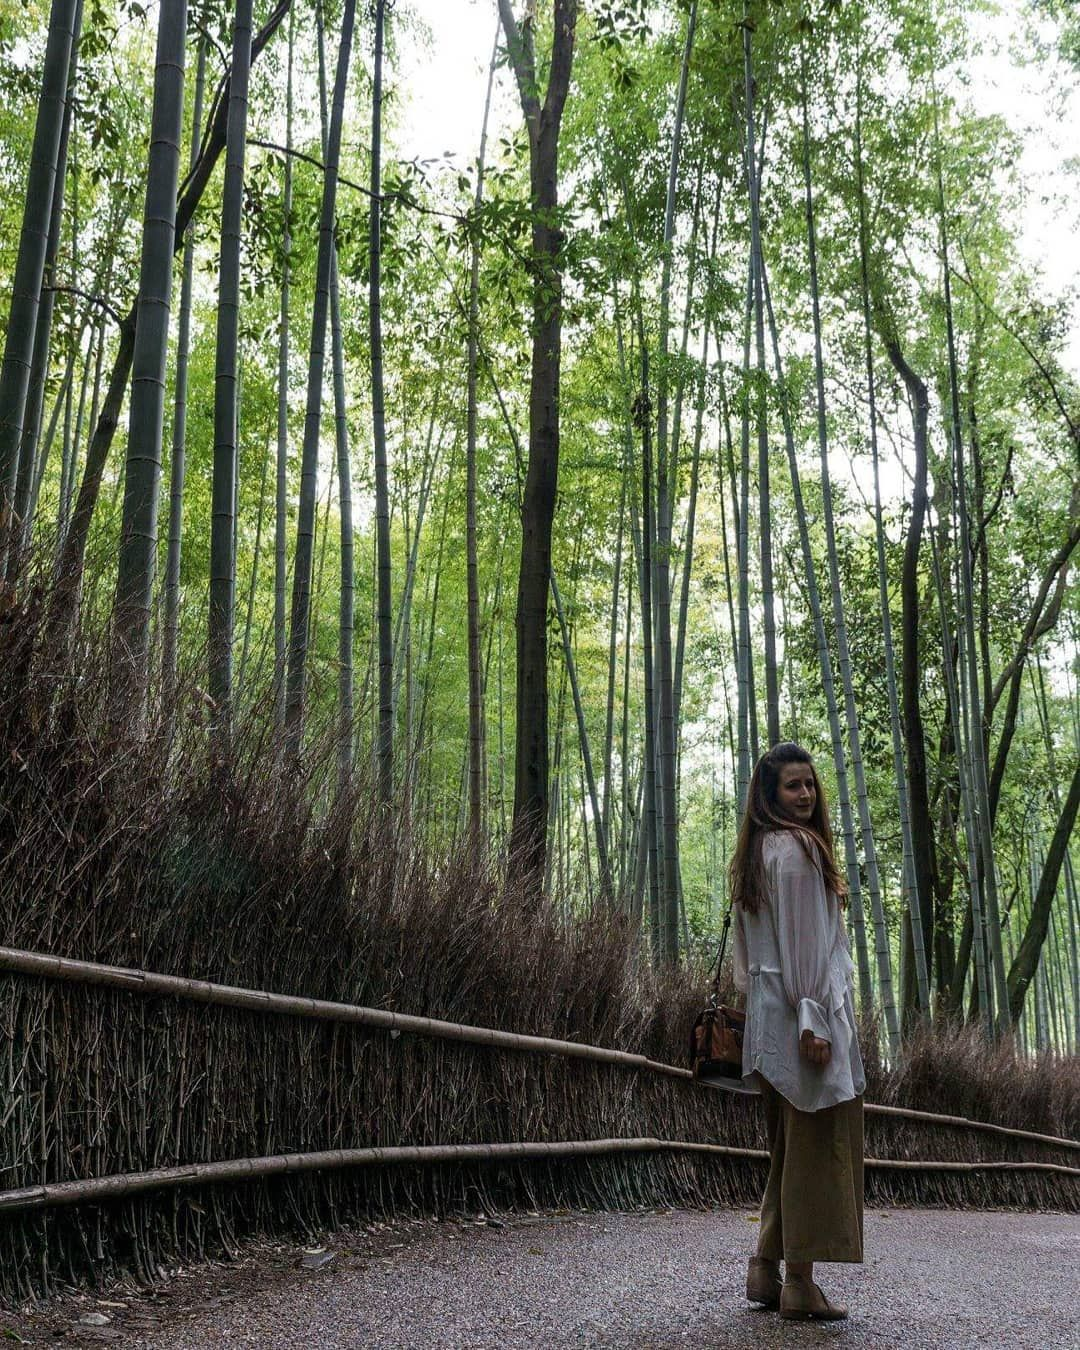 Not all those who wander are lost.... #bambooforest #arashiyama #arashiyamabambooforest #japanspring #beautyisallaroun...